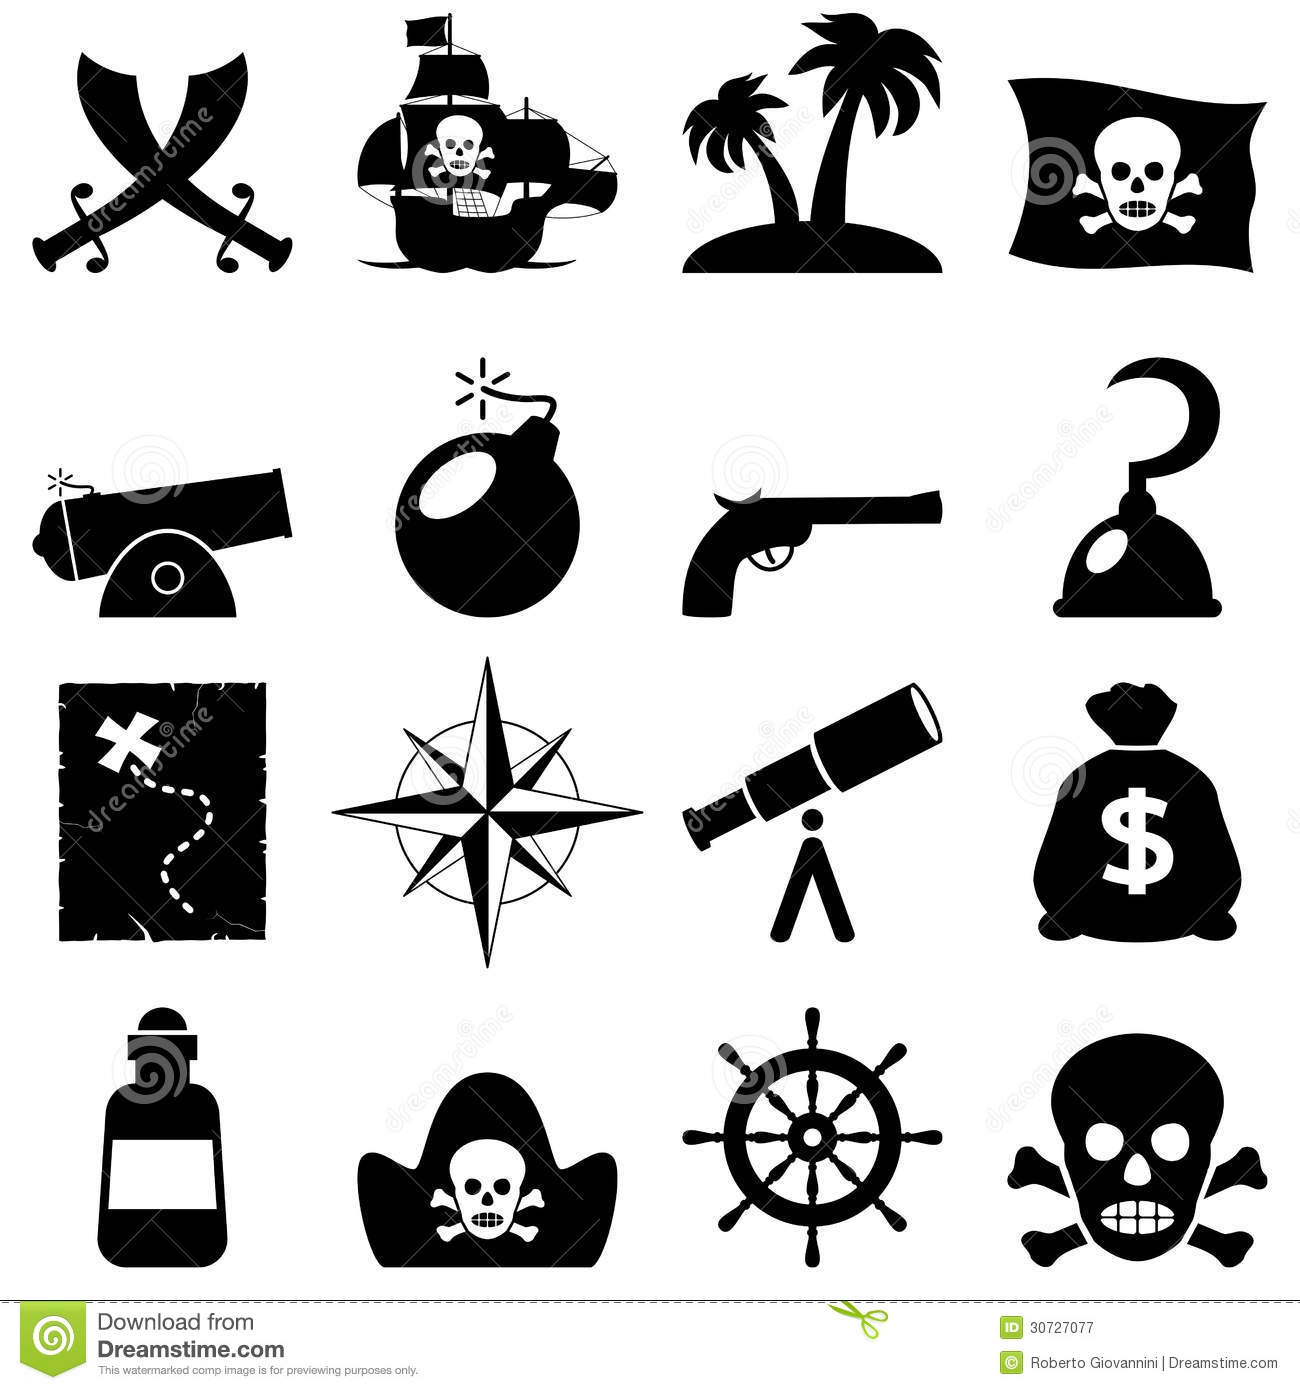 Pirates Black And White Icons Royalty Free Stock